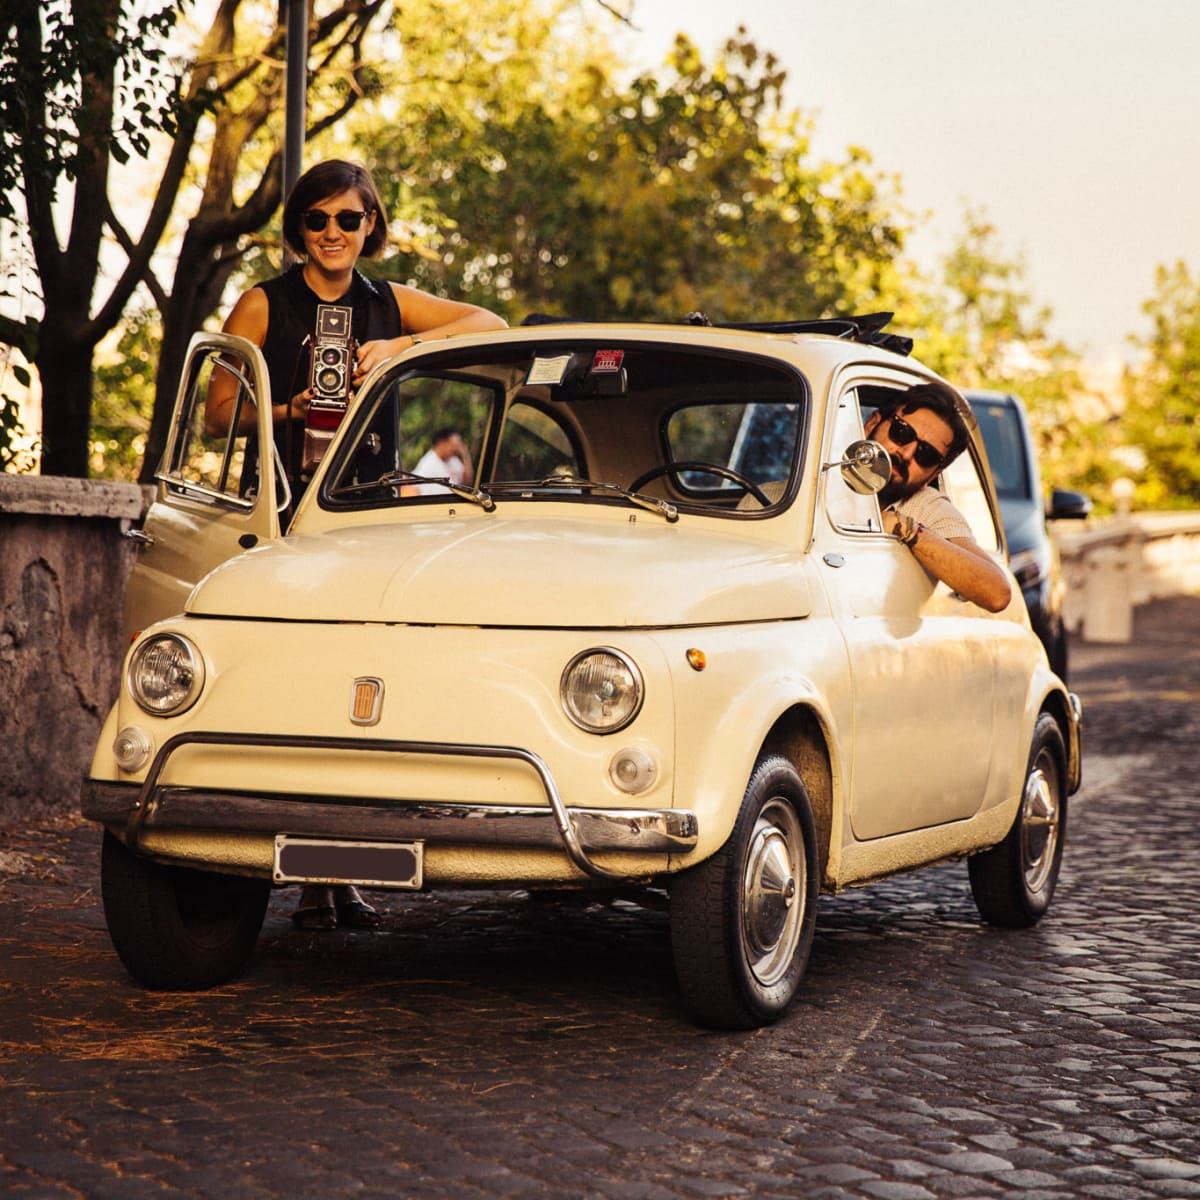 Vintage Tour with a Classic Fiat 500 - City tour in Rome